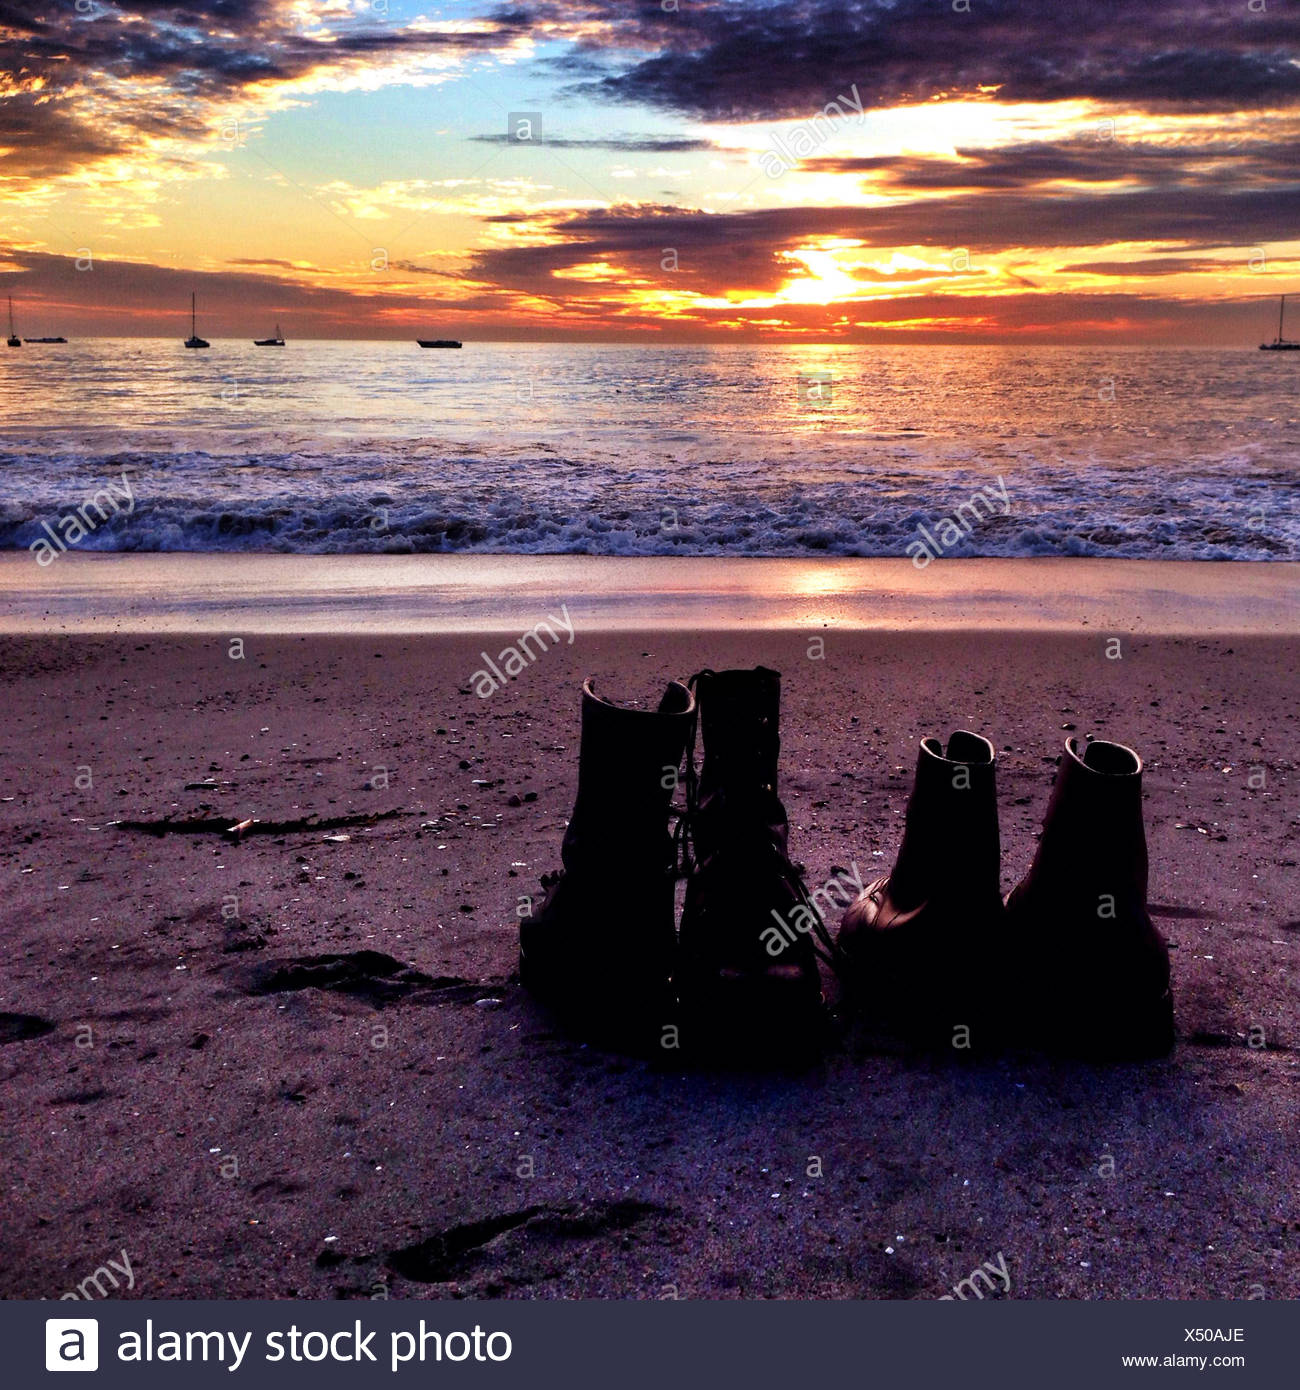 Shoes on beach - Stock Image